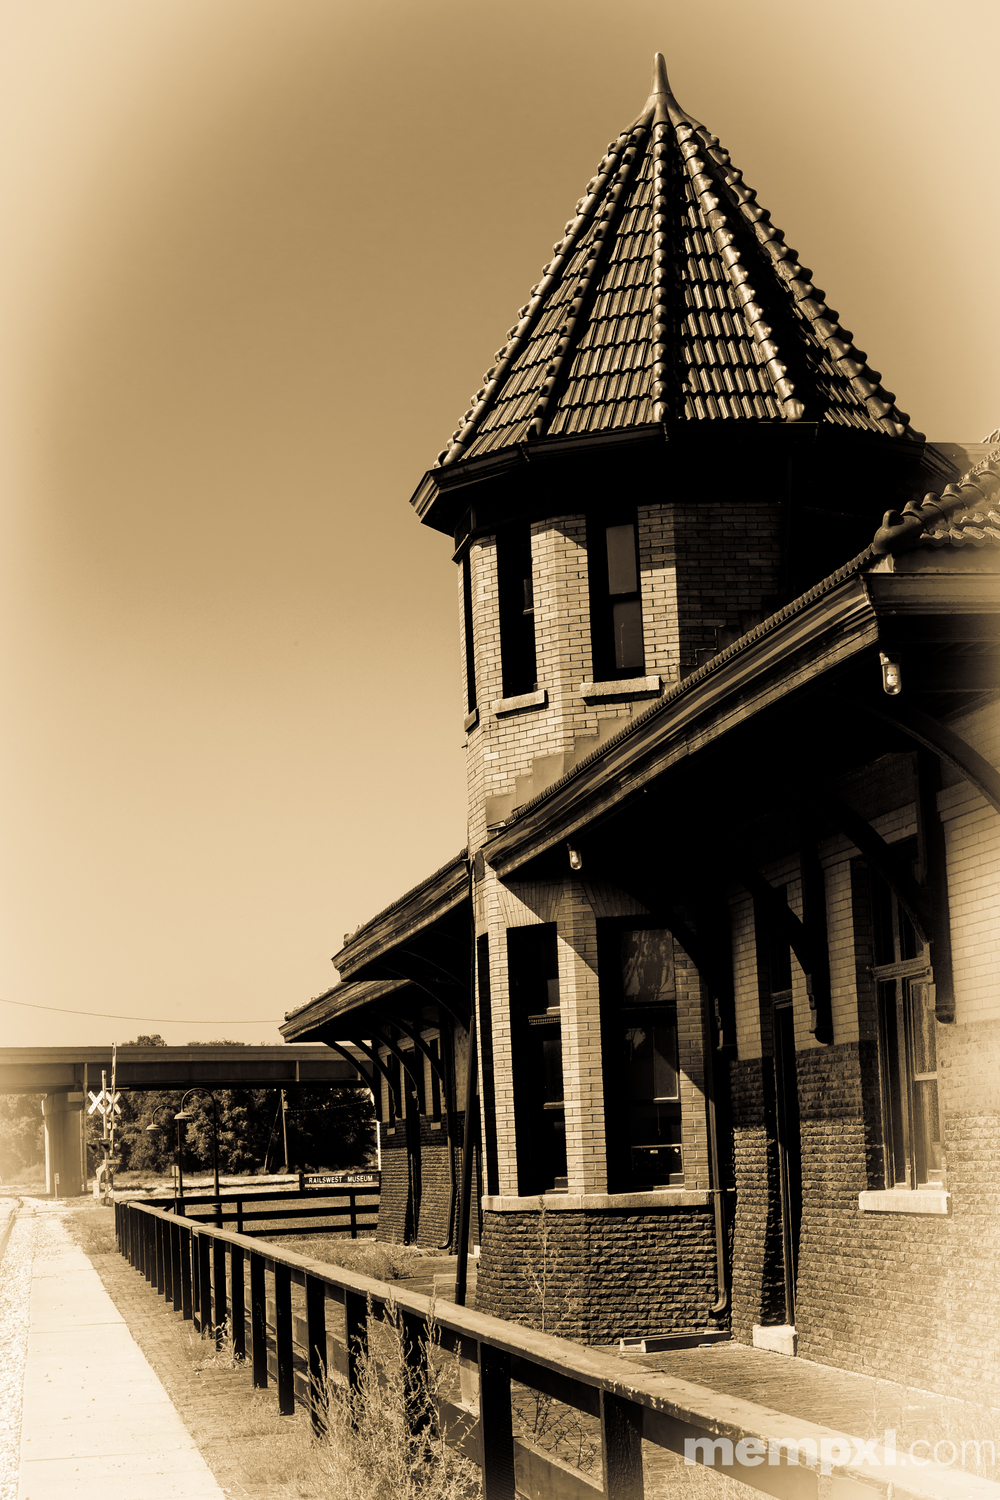 Council bluffs RR Depot  2014 WM.jpg